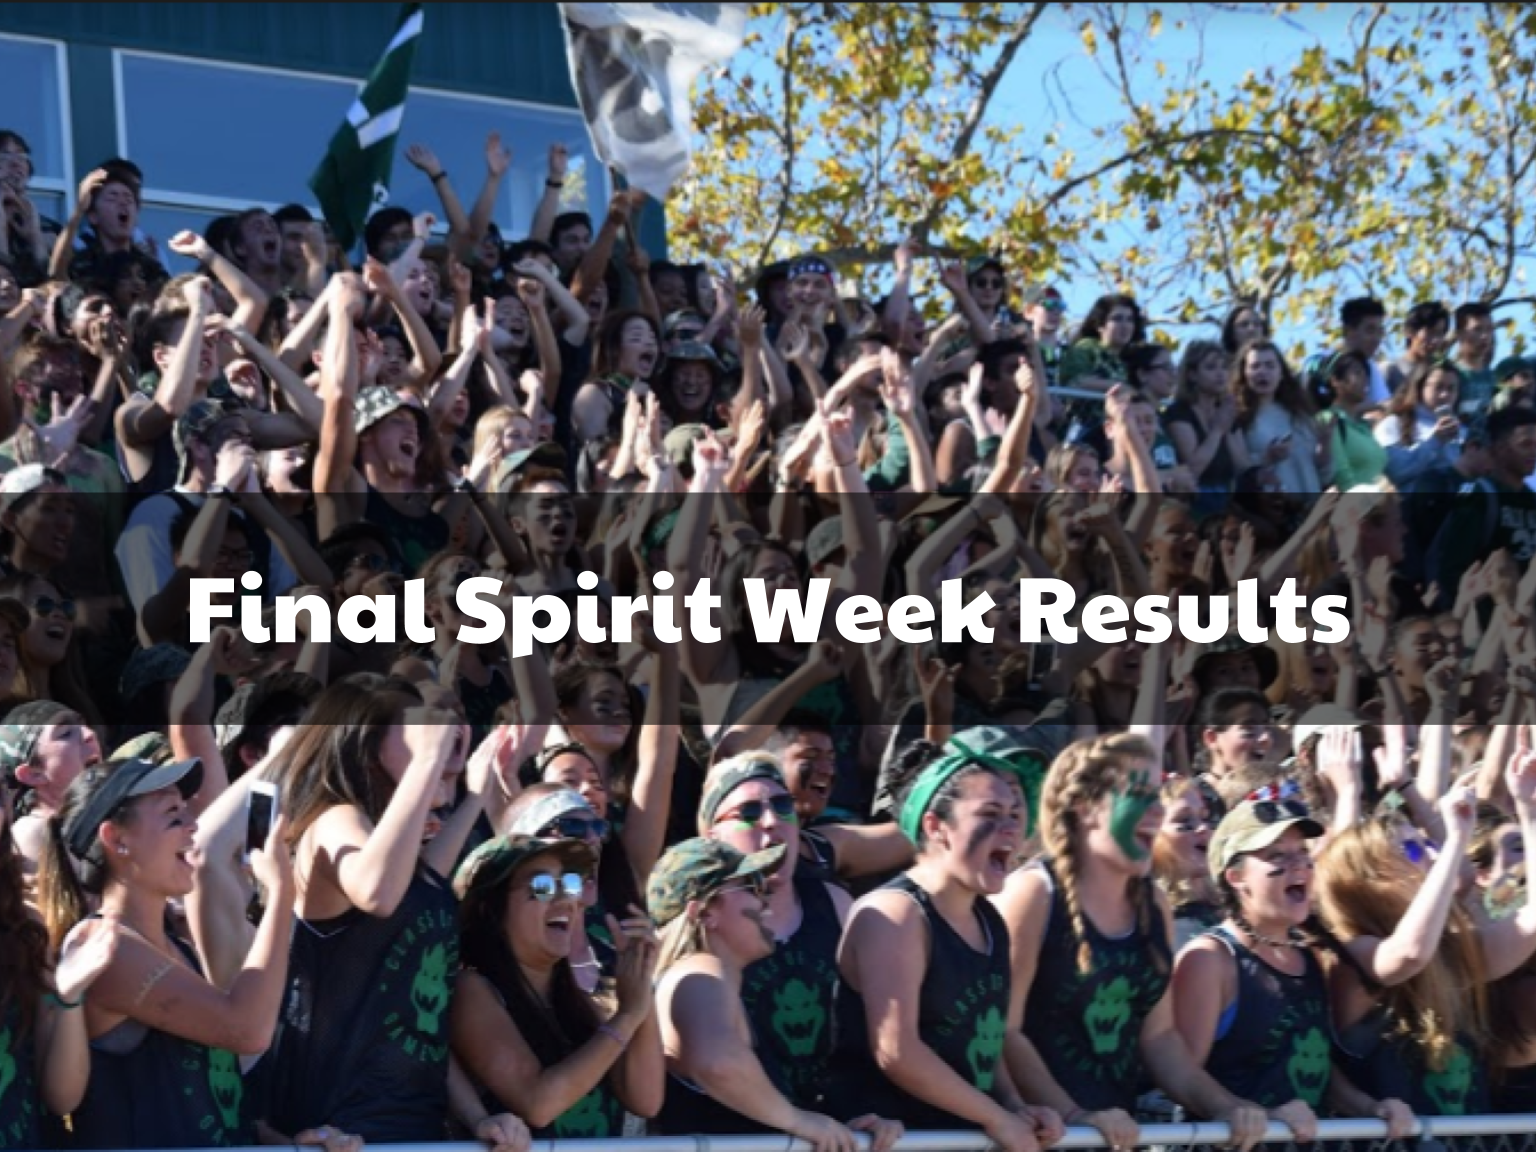 Spirit Week 2016 Featured Images